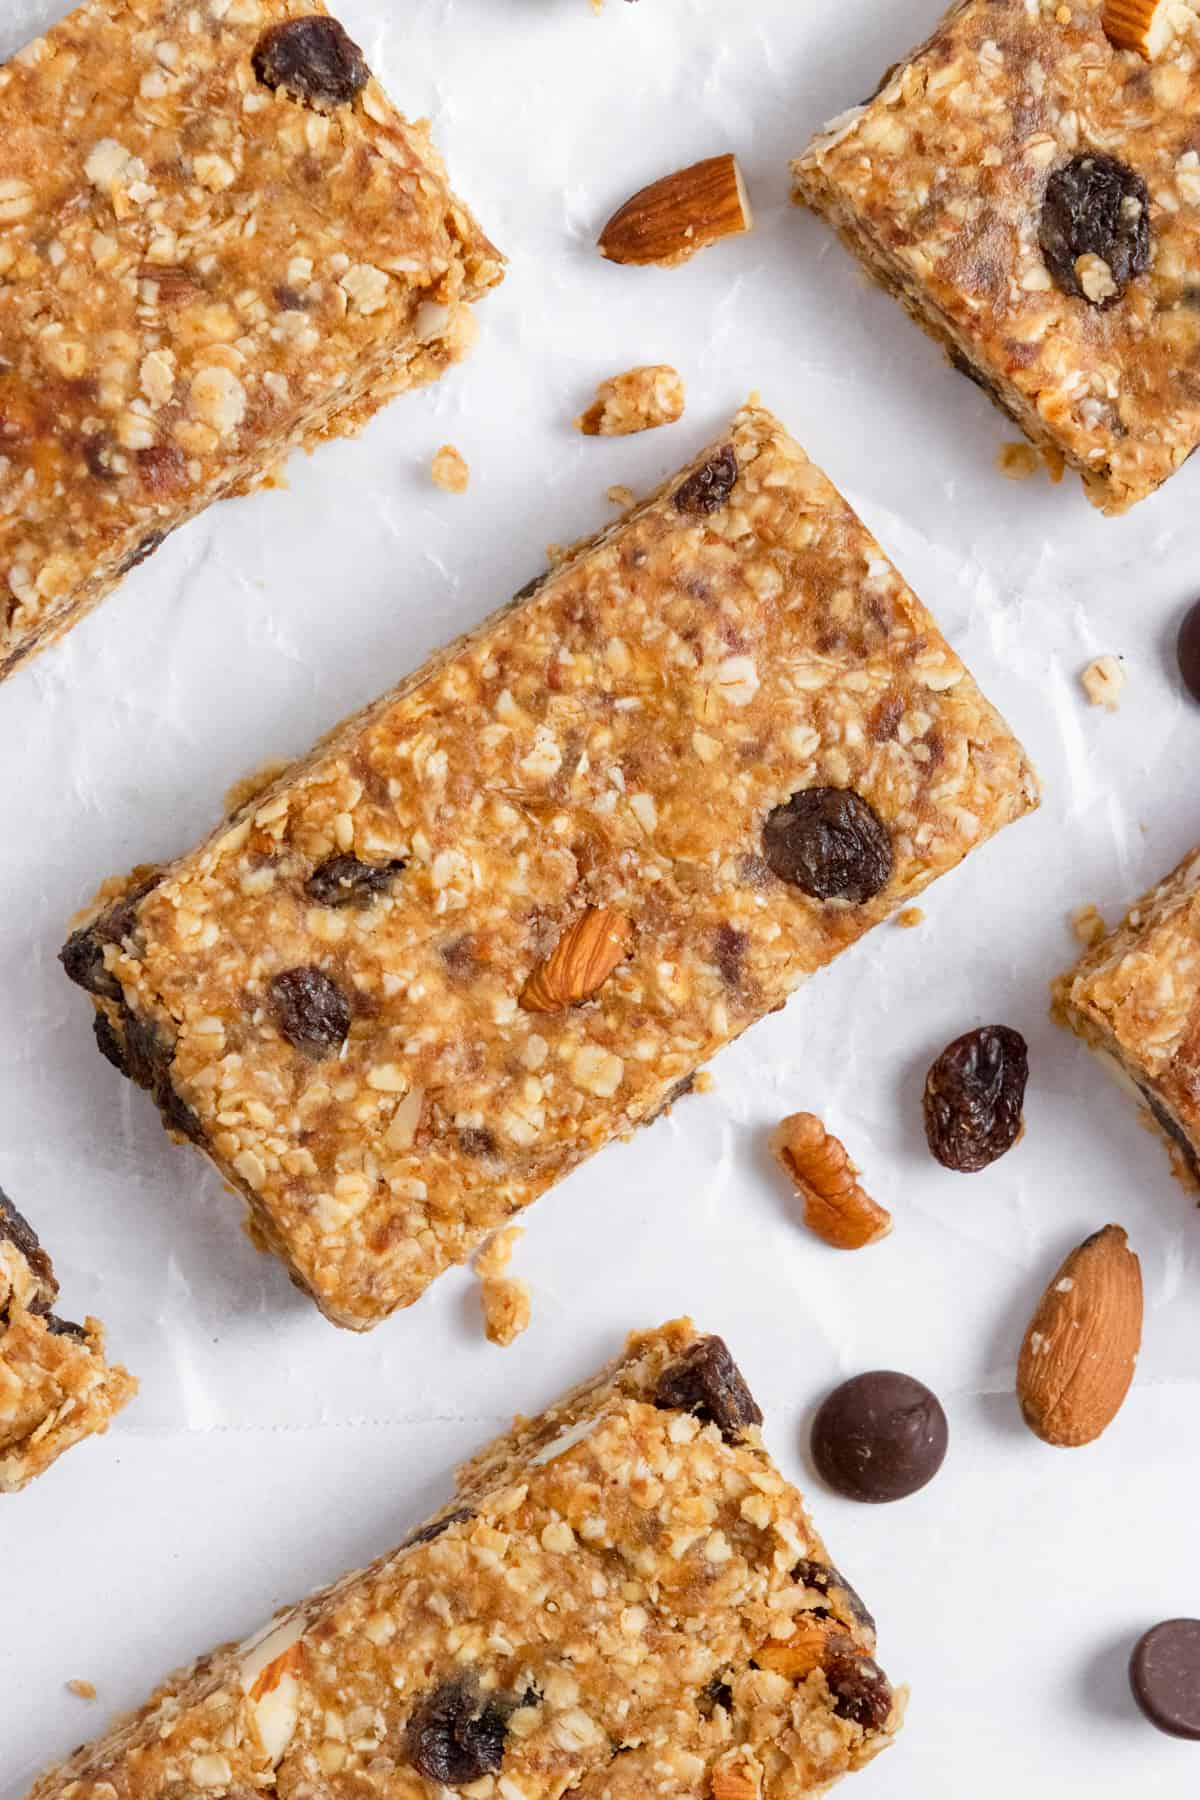 Trail mix bars laying on wax paper.